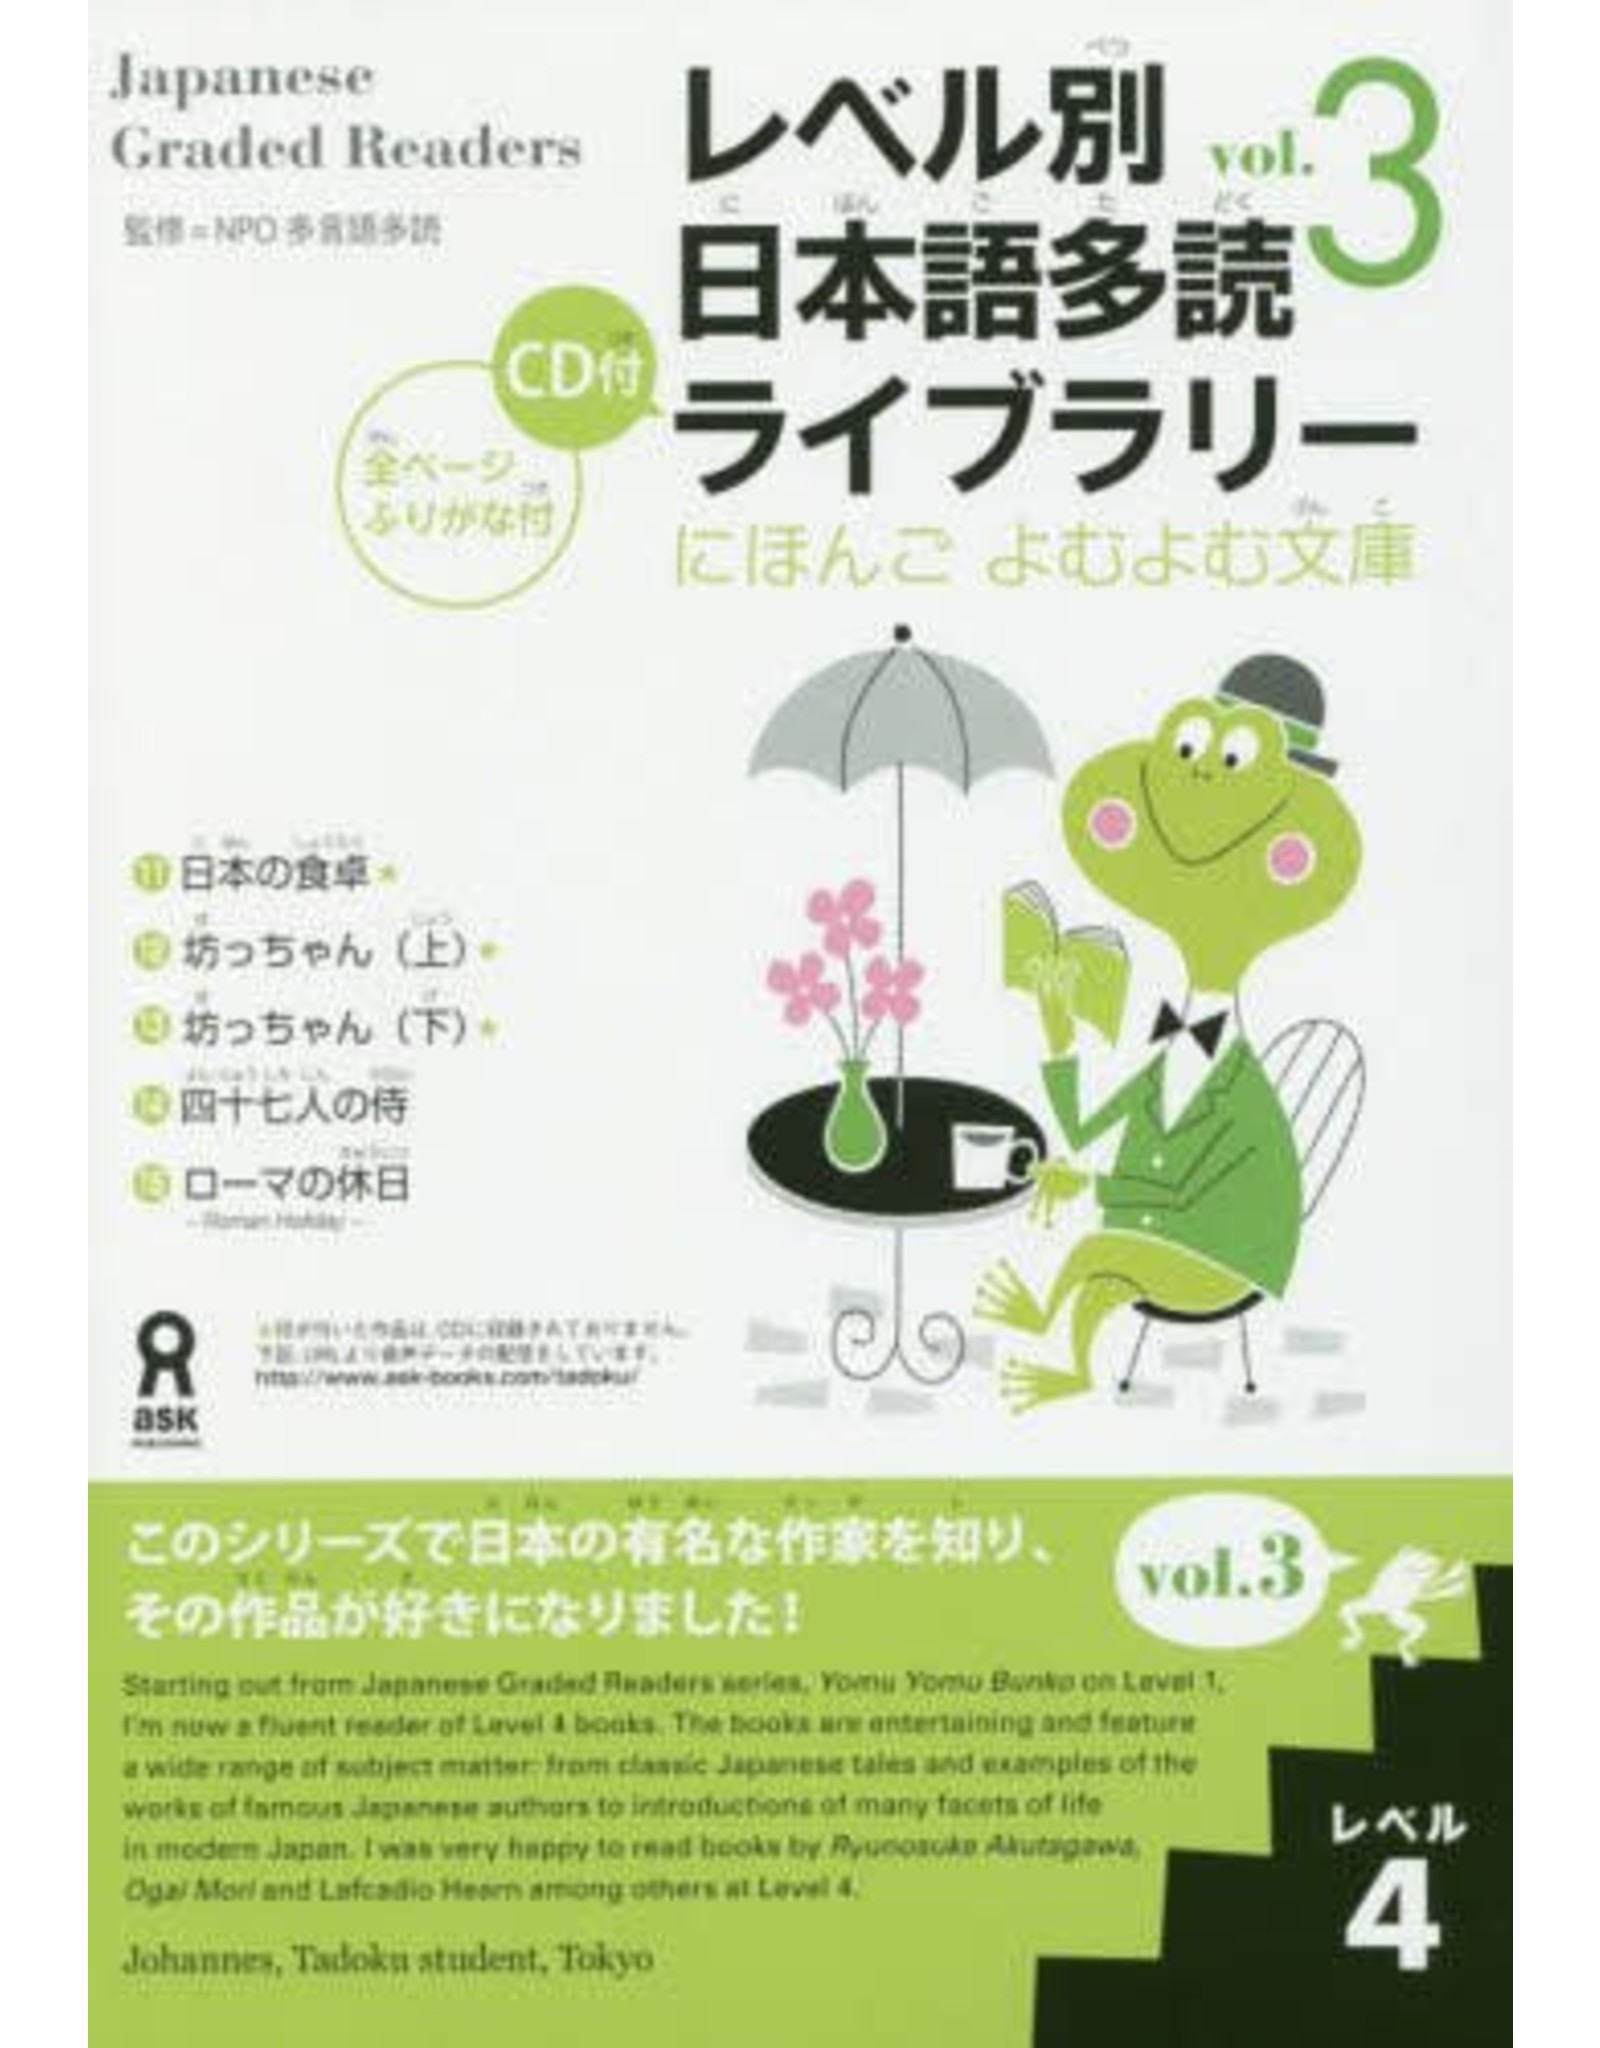 ASK LEVEL BETSU NIHONGO TADOKU LIBRARY (3) LEVEL 4 - JAPANESE GRADED READERS WCD VOL. 3 LEVEL 4